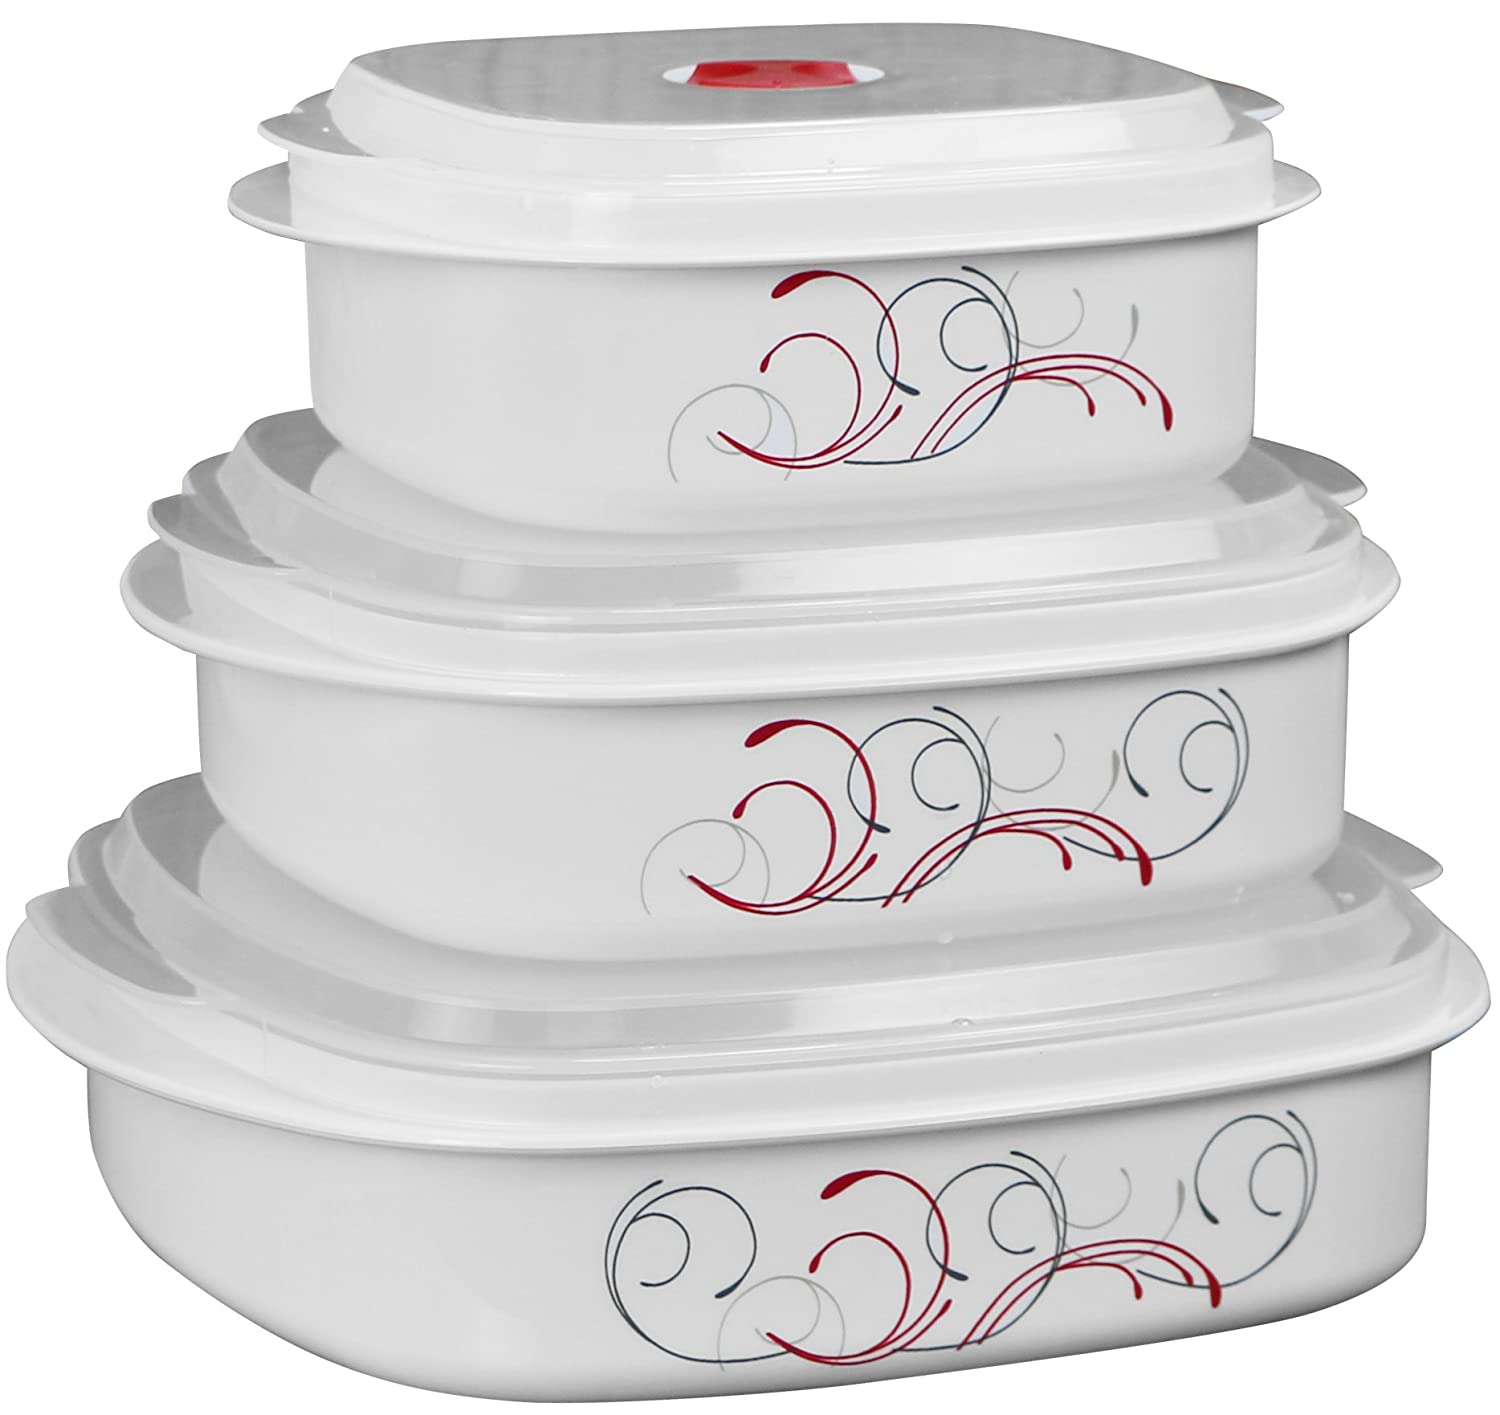 Corelle Coordinates Splendor 6-Piece Microwave Cookware and Storage Set Reston Lloyd Ltd. 20254